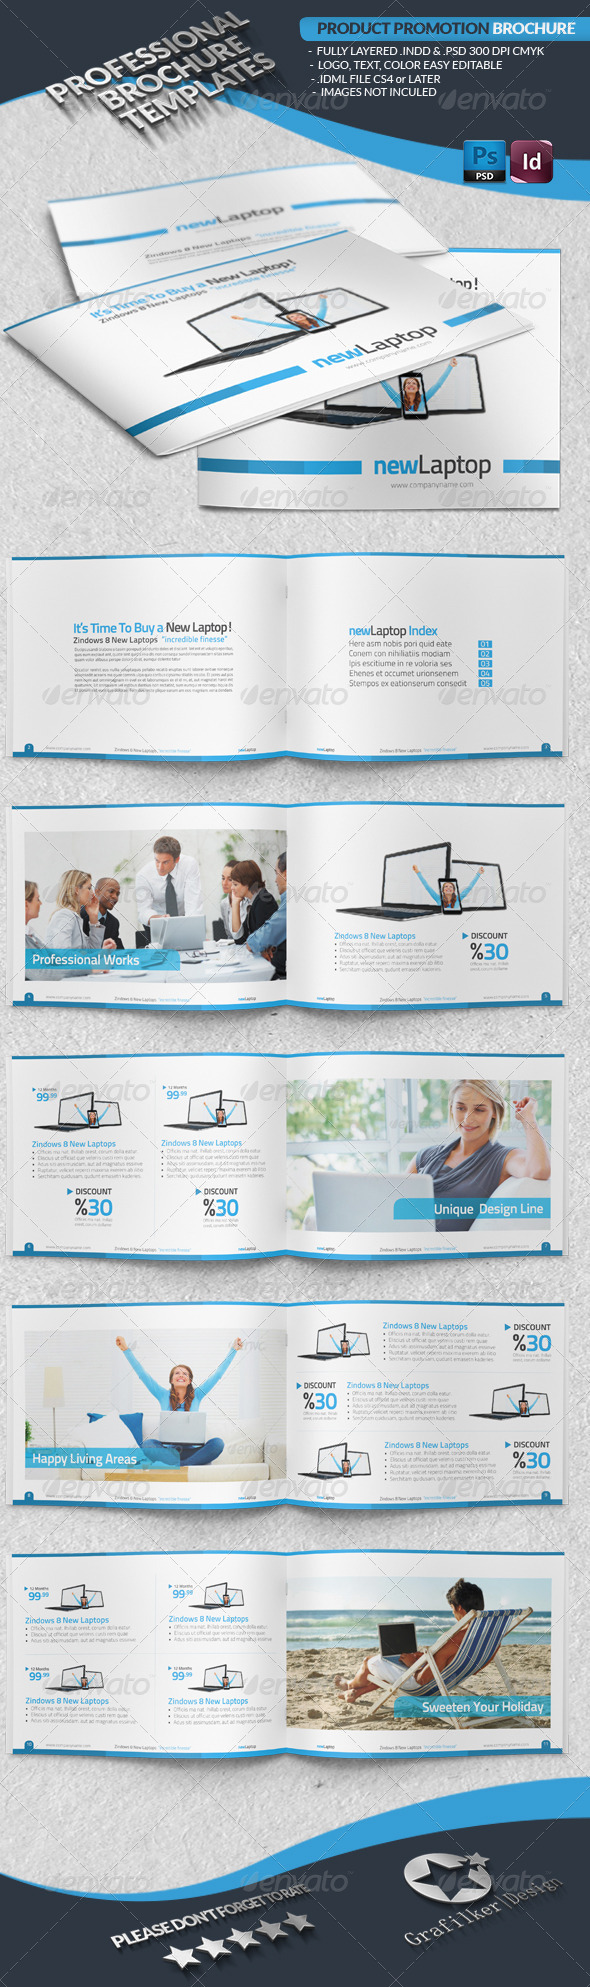 Product Promotion Brochure - Brochures Print Templates